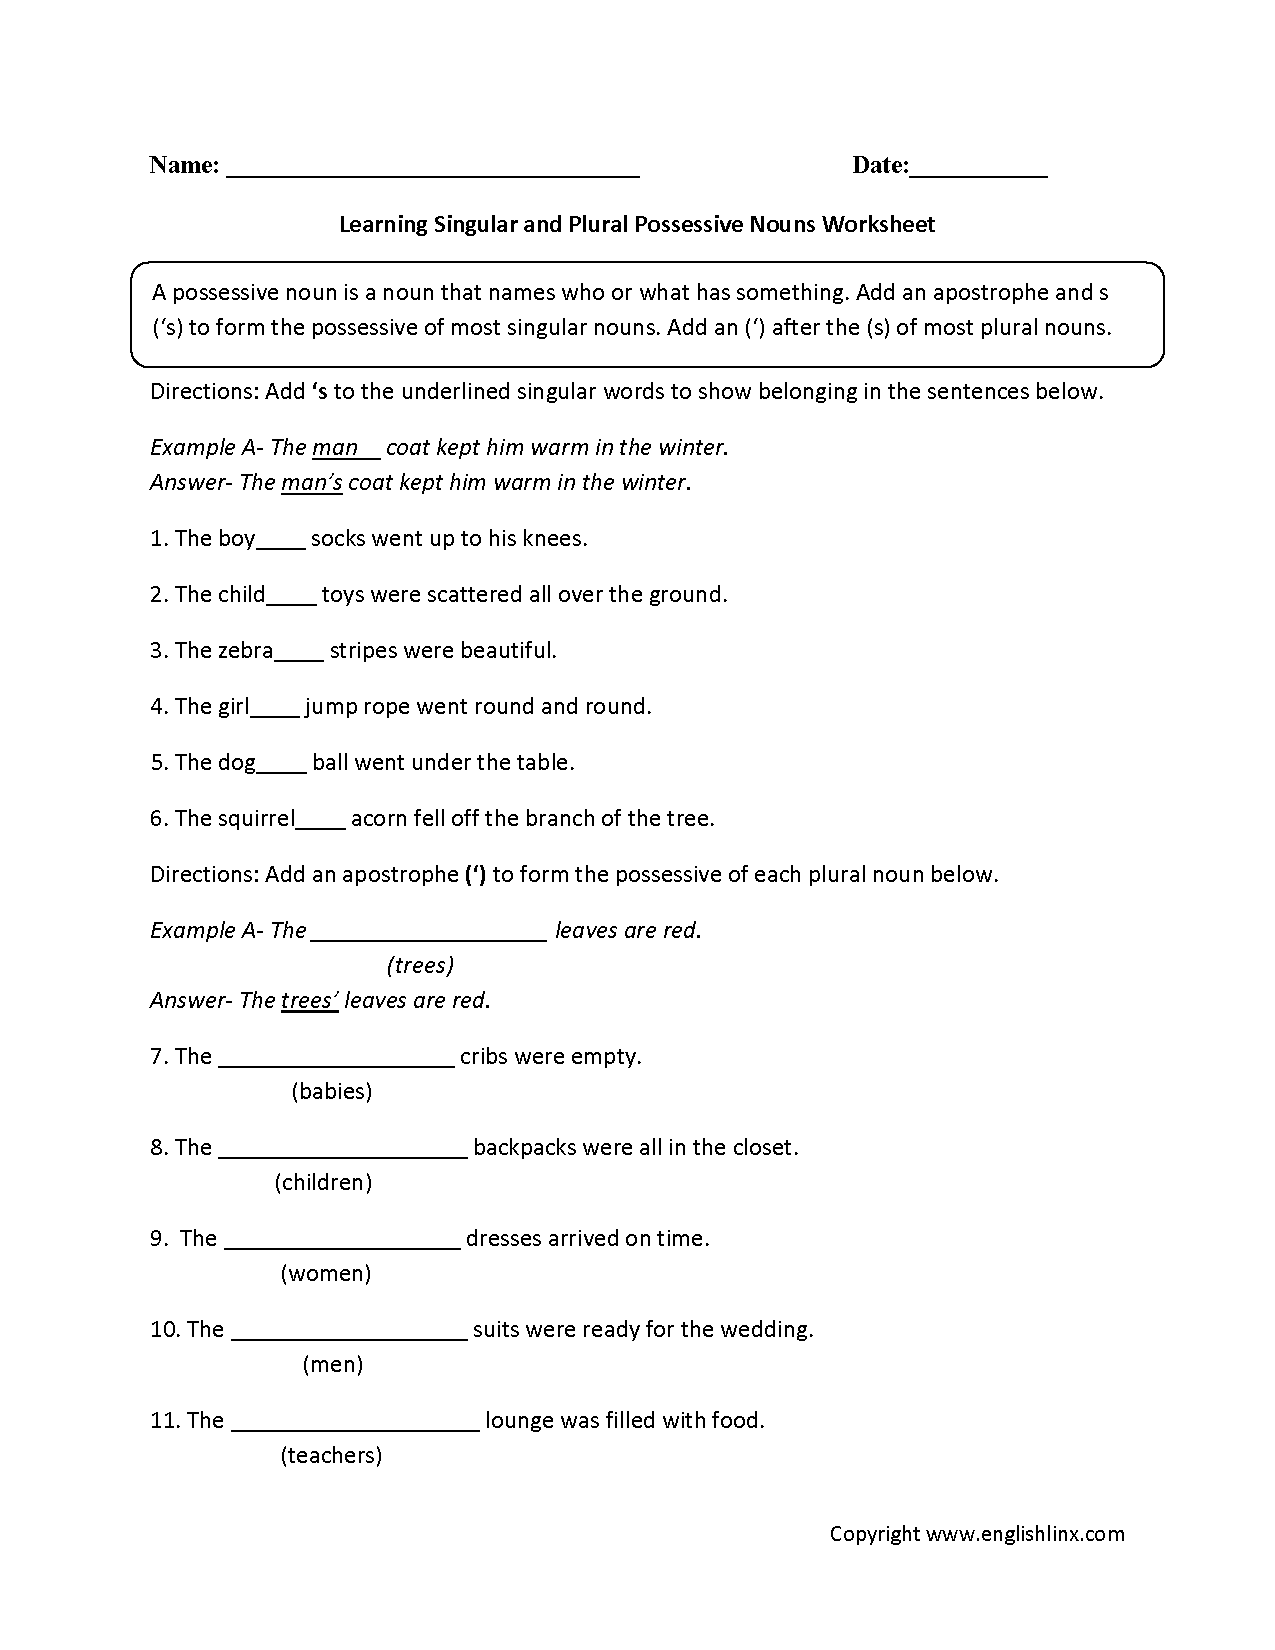 Worksheets Possessive Nouns Worksheet nouns worksheets possessive grades 9 12 worksheets